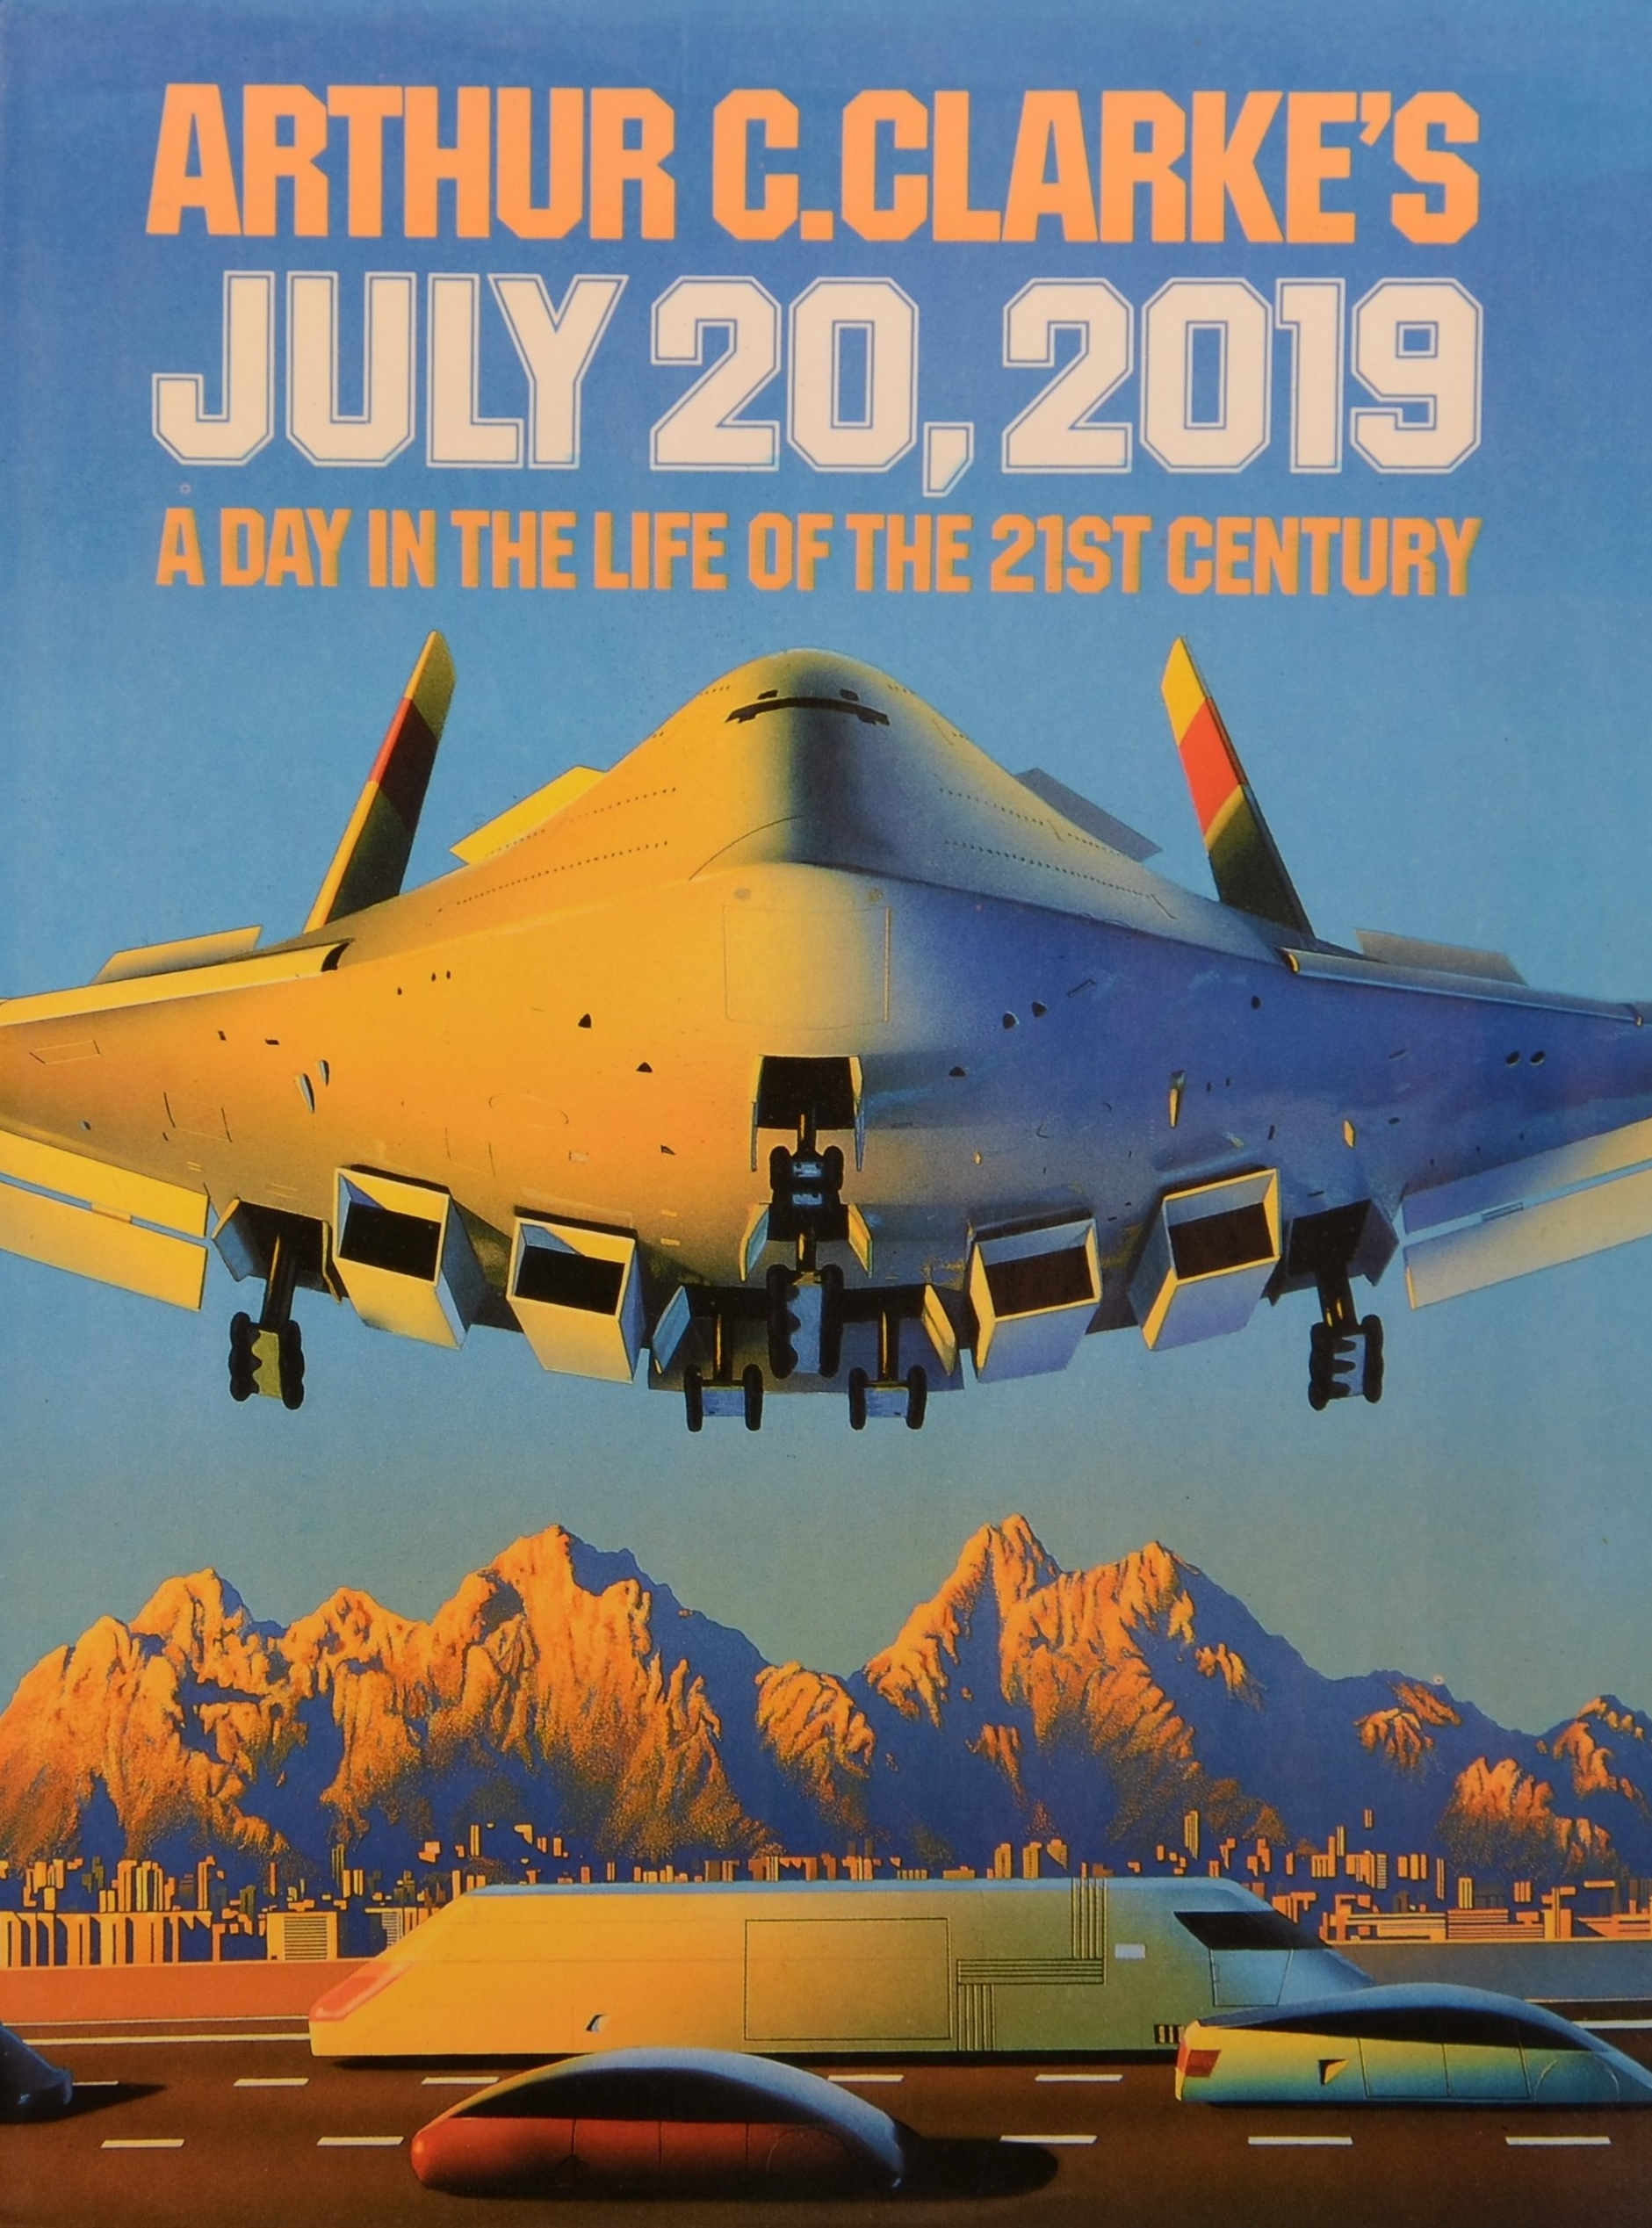 Arthur C Clarke's July 20th 2019